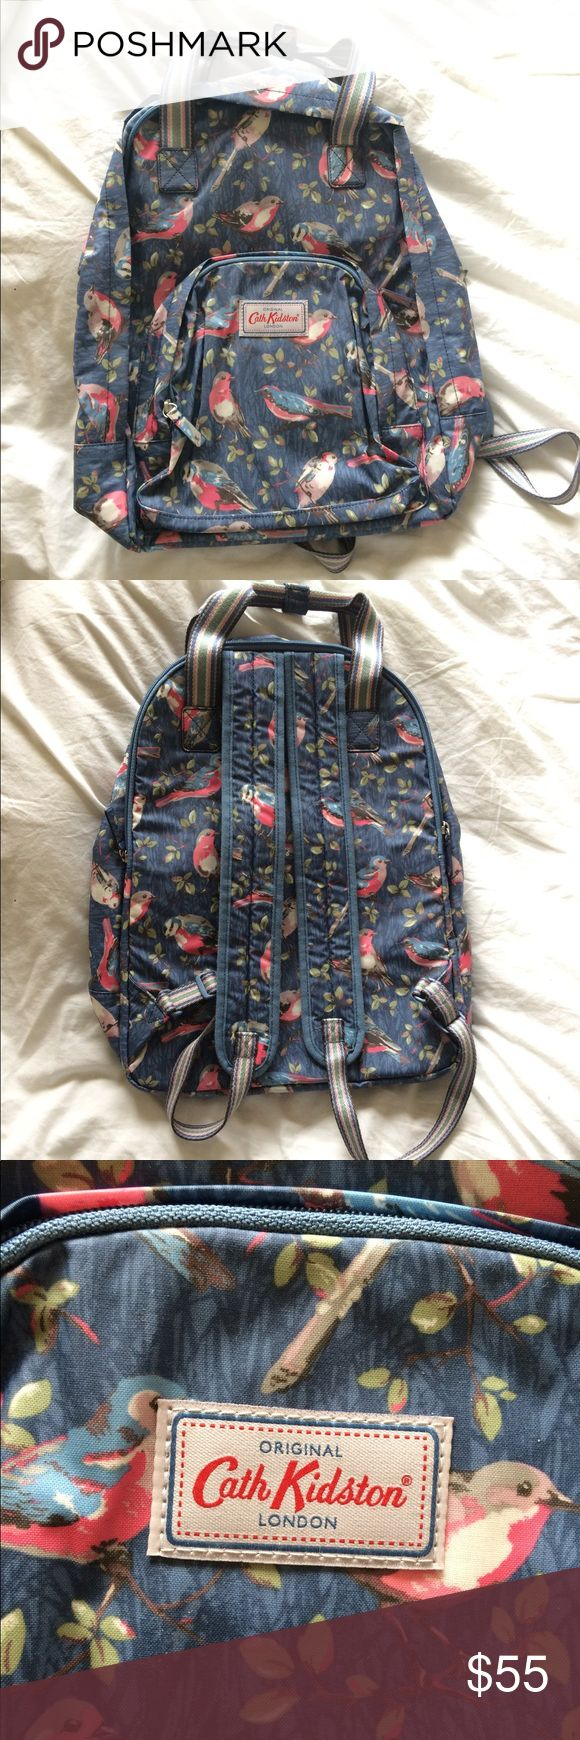 NWOT Cath Kidston Laptop Backpack Item information: Brand: Cath Kidston Garment: NWOT Laptop backpack in bird print Size: OS Fit: Can fit a ton of stuff in here! Lots of pockets Details: Never used (bought it last year but never got around to using it)  Shop information: Hello! I'm Rebecca, a college student near Seattle. All items ship in 1-2 days. I am flexible on price and will likely accept a *reasonable* offer. Have a great day! Cath Kidston Bags Backpacks